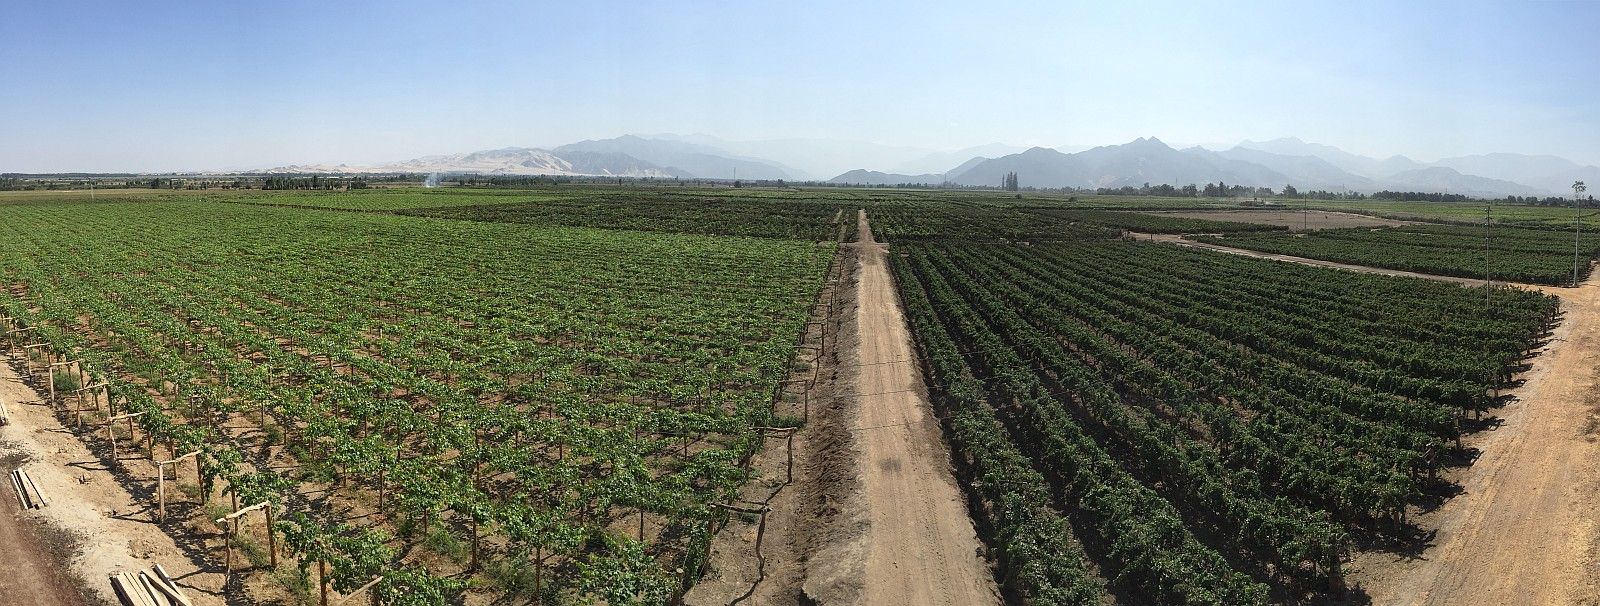 Vineyards at Tacama with Andes mountains in the background